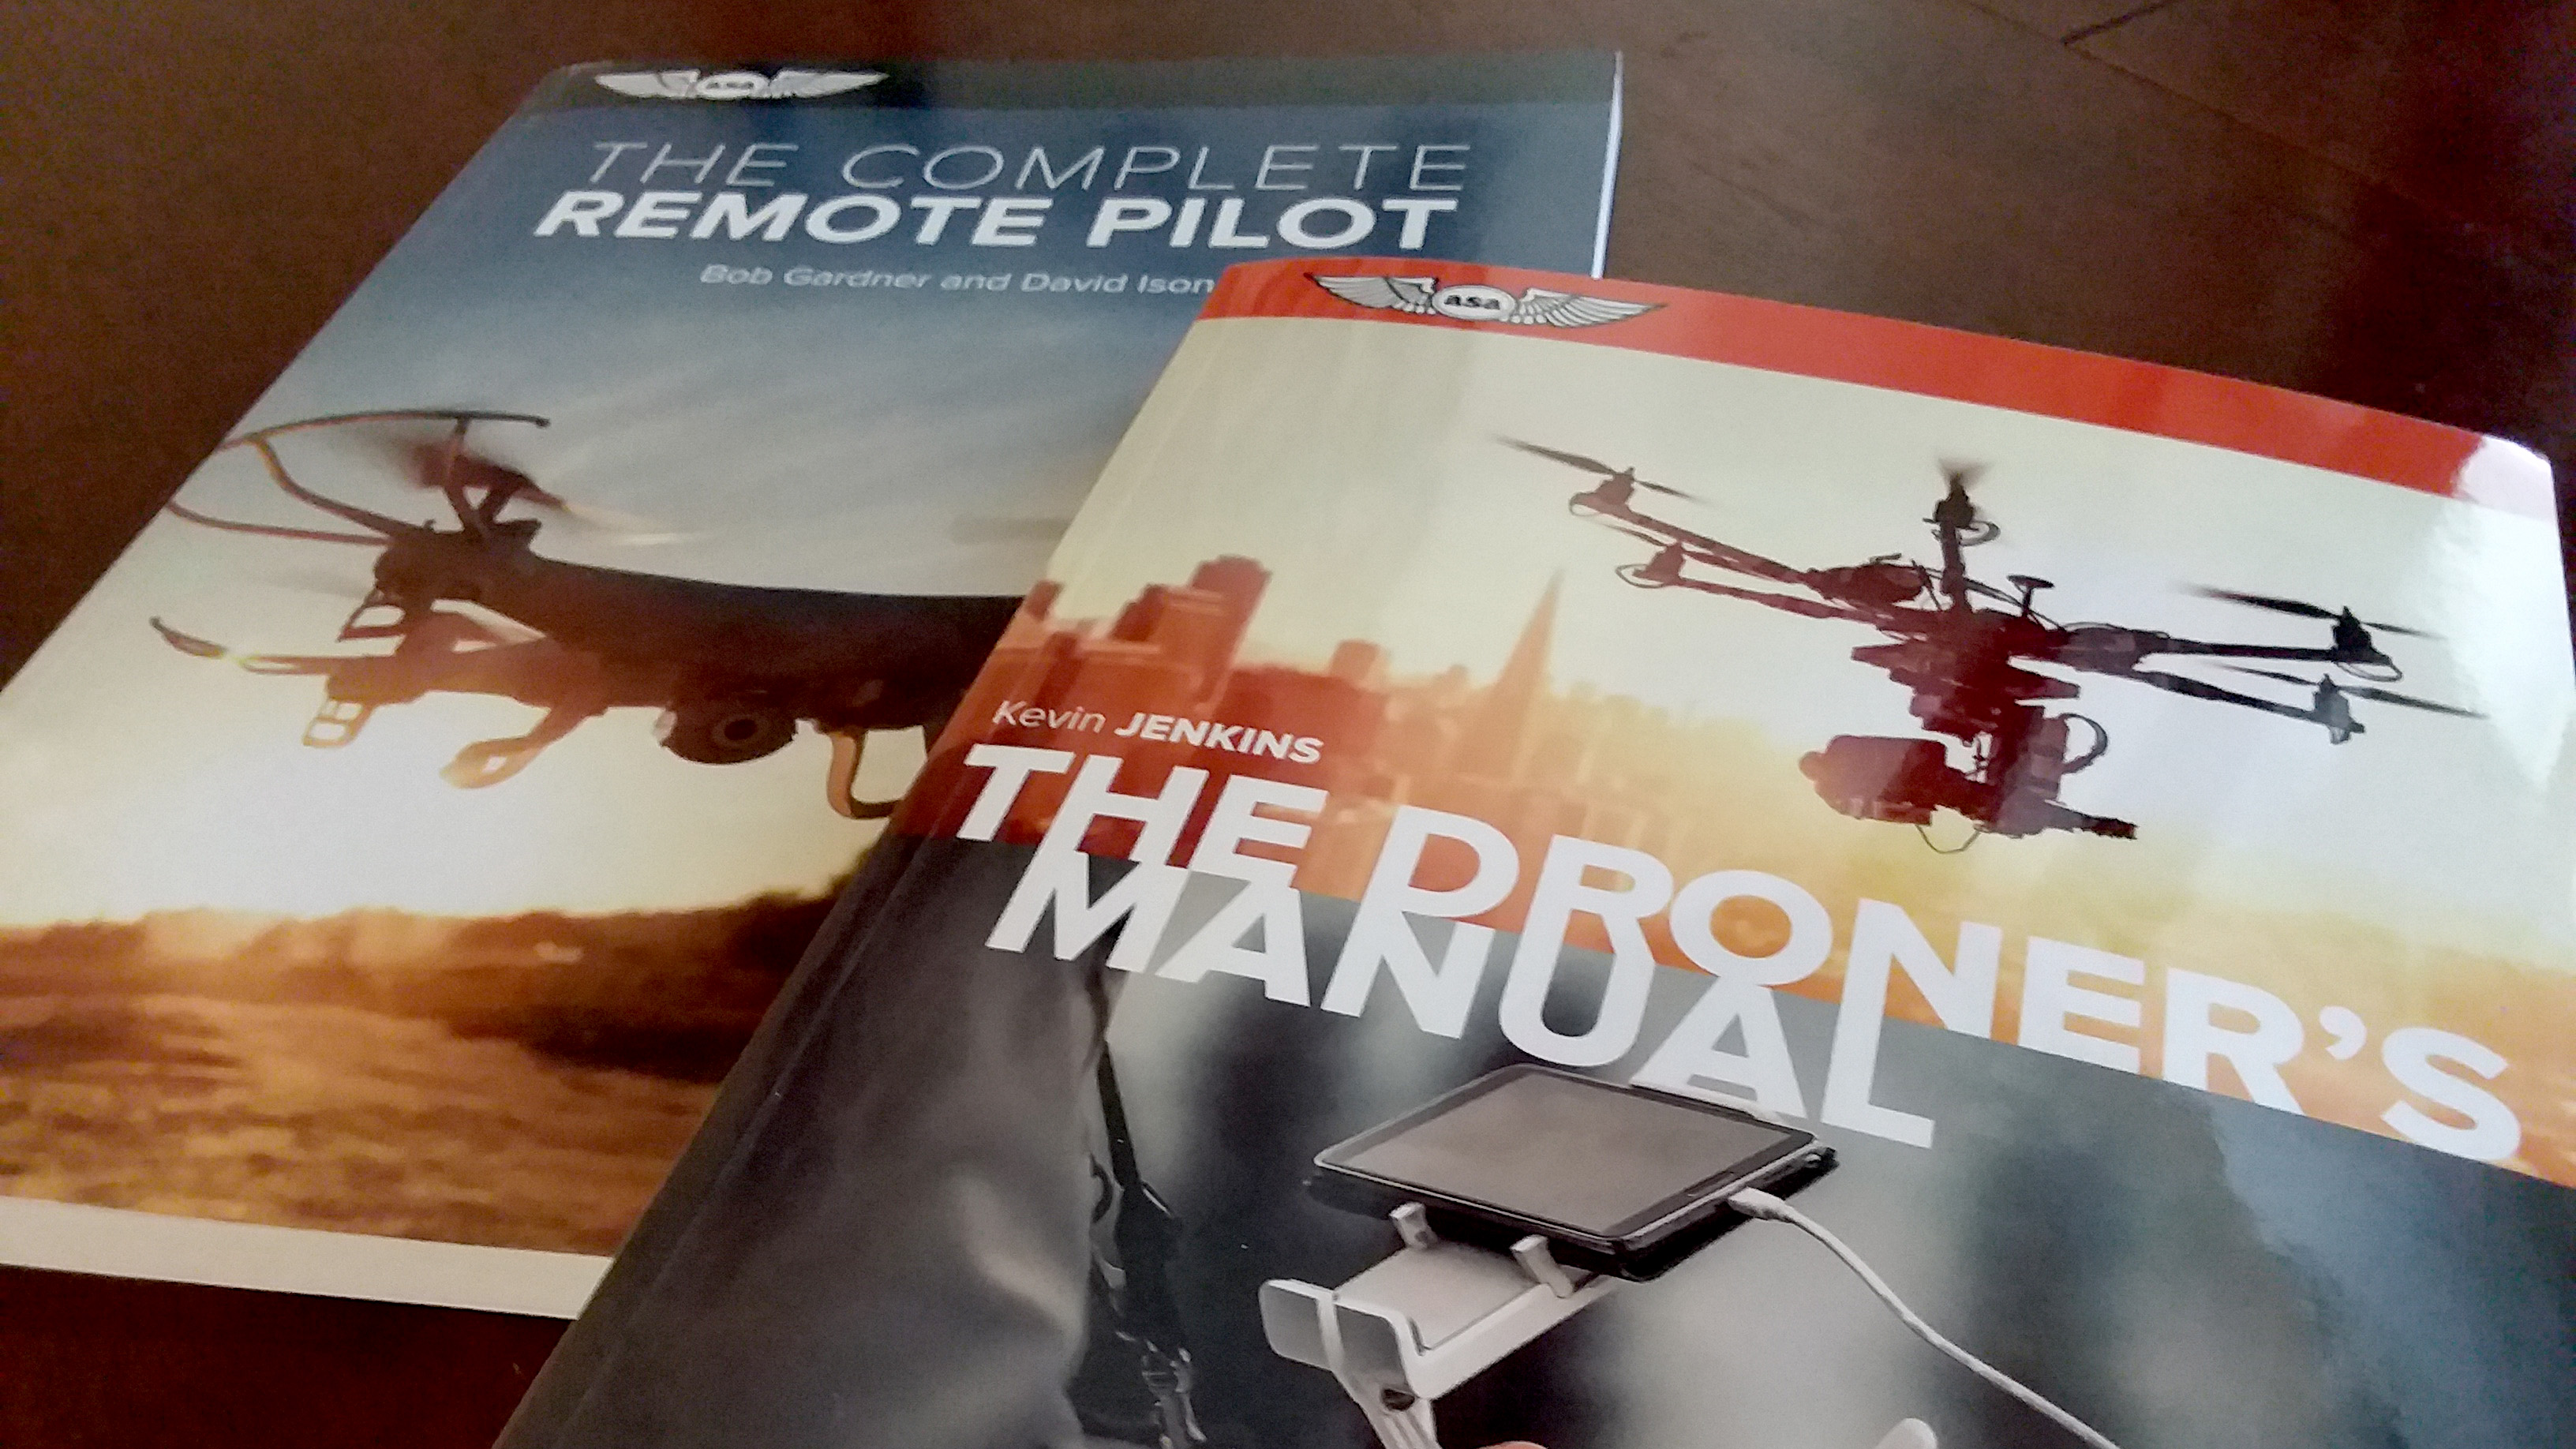 Two new titles from Aviation Supplies & Academics take the drone enthusiast from building your own unit to comprehension of the regulations and how to operate safely in the National Airspace System.